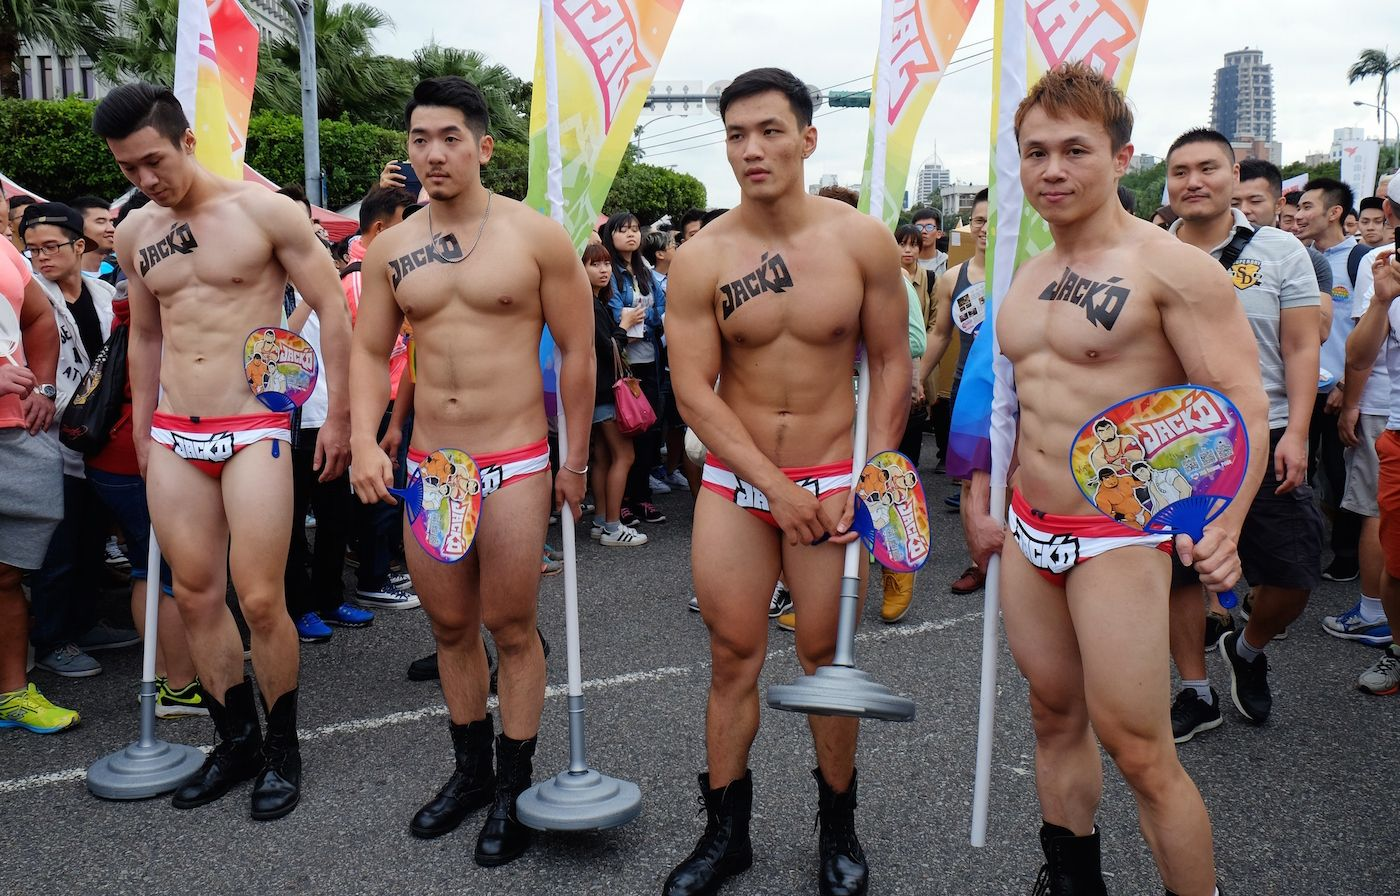 Taiwan is so gay today